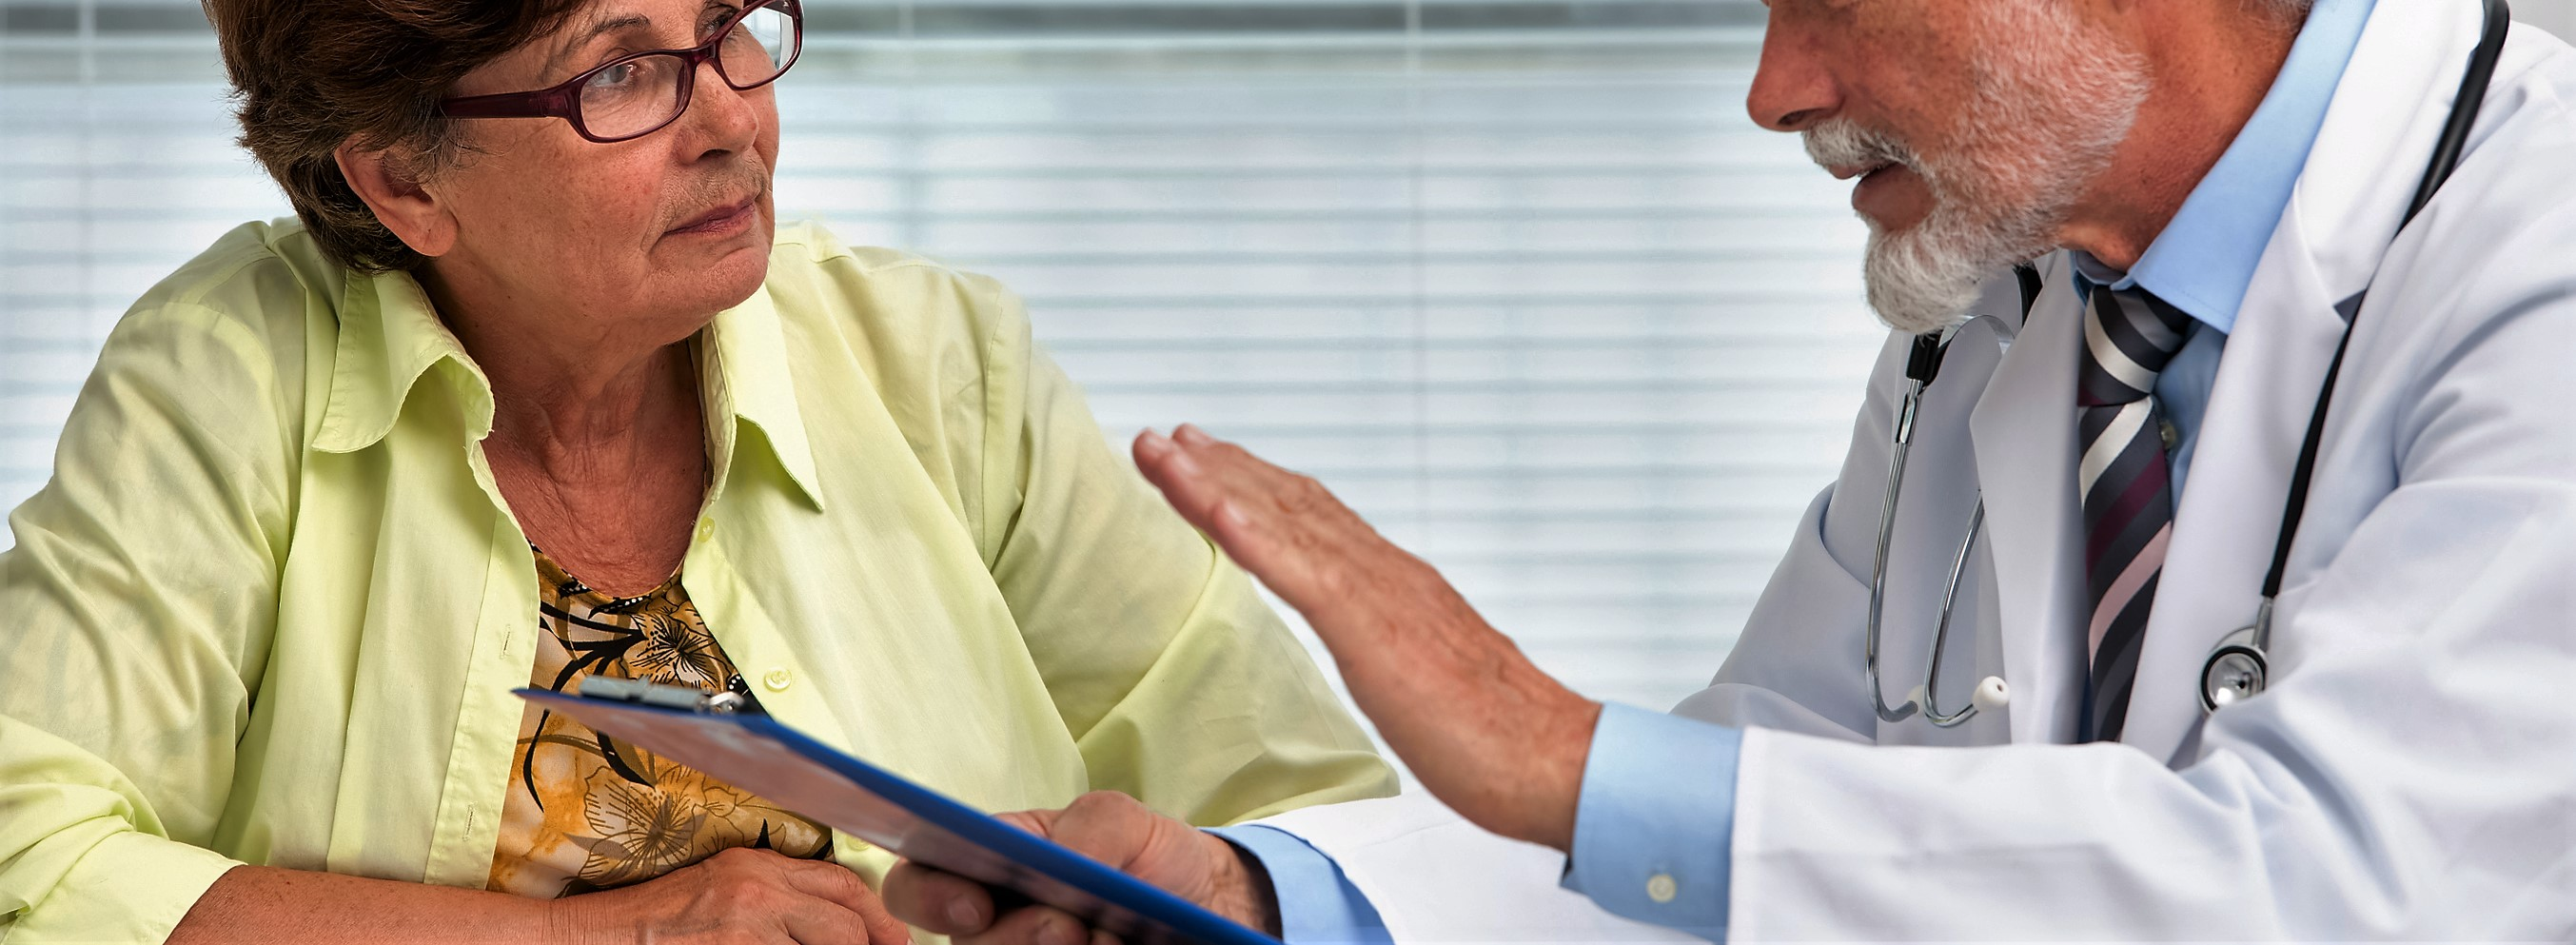 4 Ways eClinicalWorks Can Improve Patient and Physician Communication